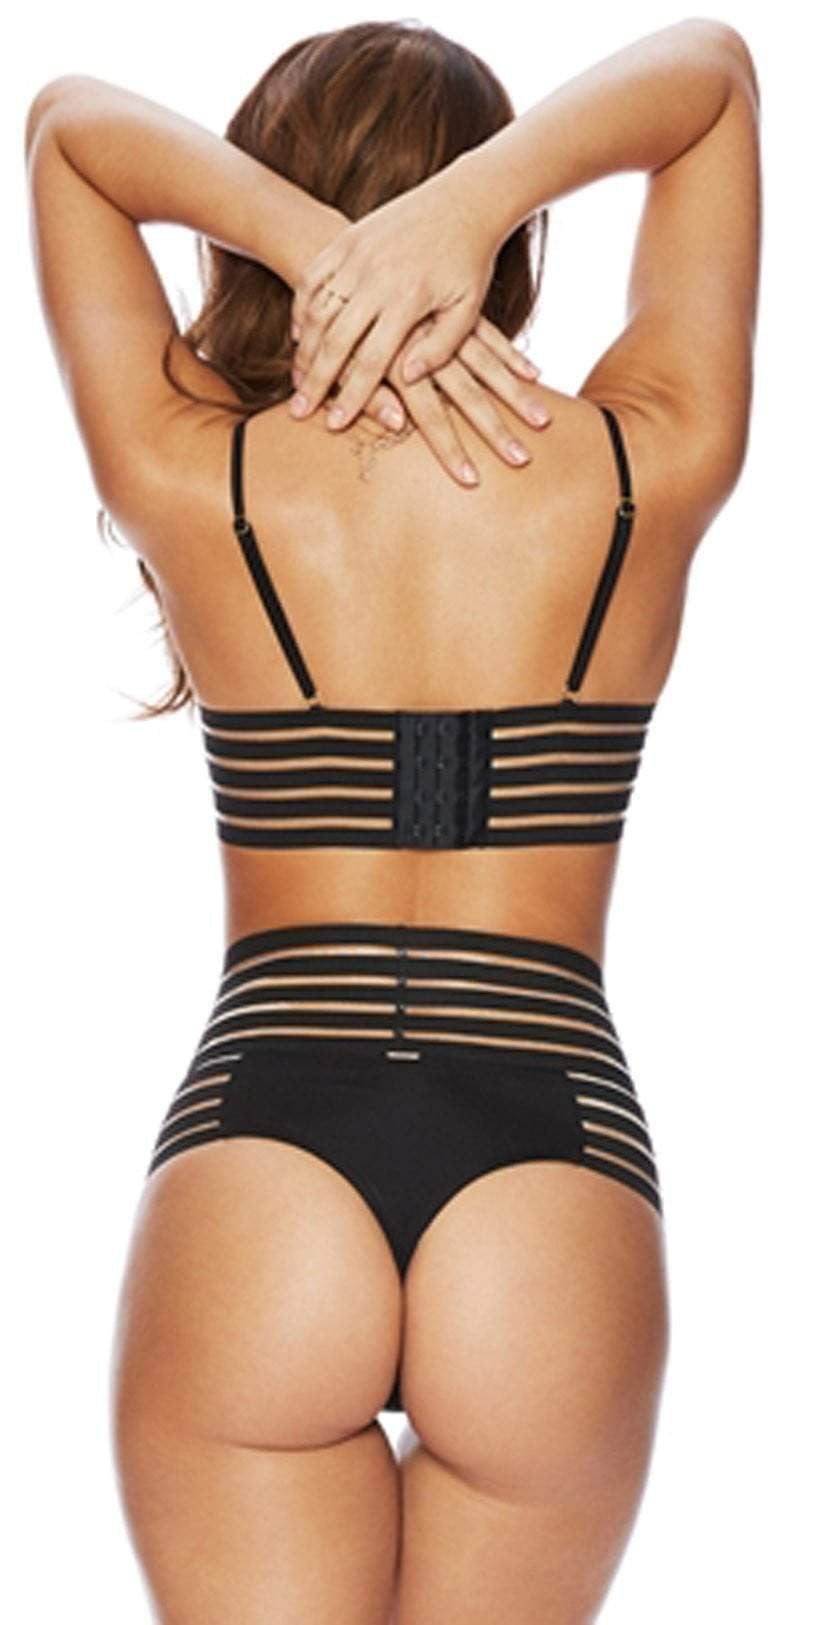 Beach Bunny Sheer Addiction Balconet Top in Black B16125T6-BLCK: